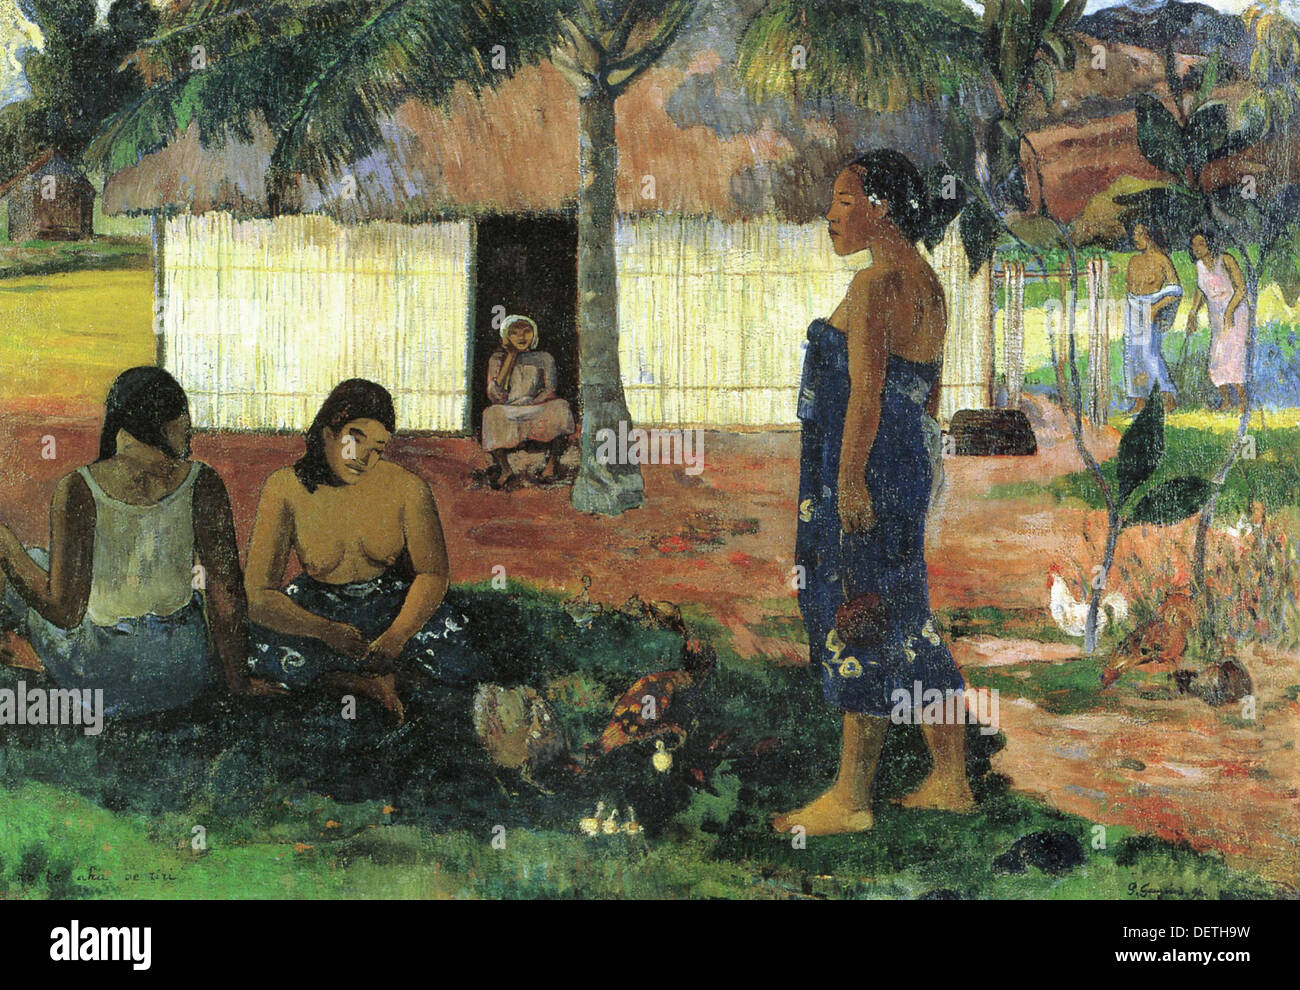 Paul Gauguin - Why are you hungry - 1896 - The Art Institute of Chicago - Stock Image